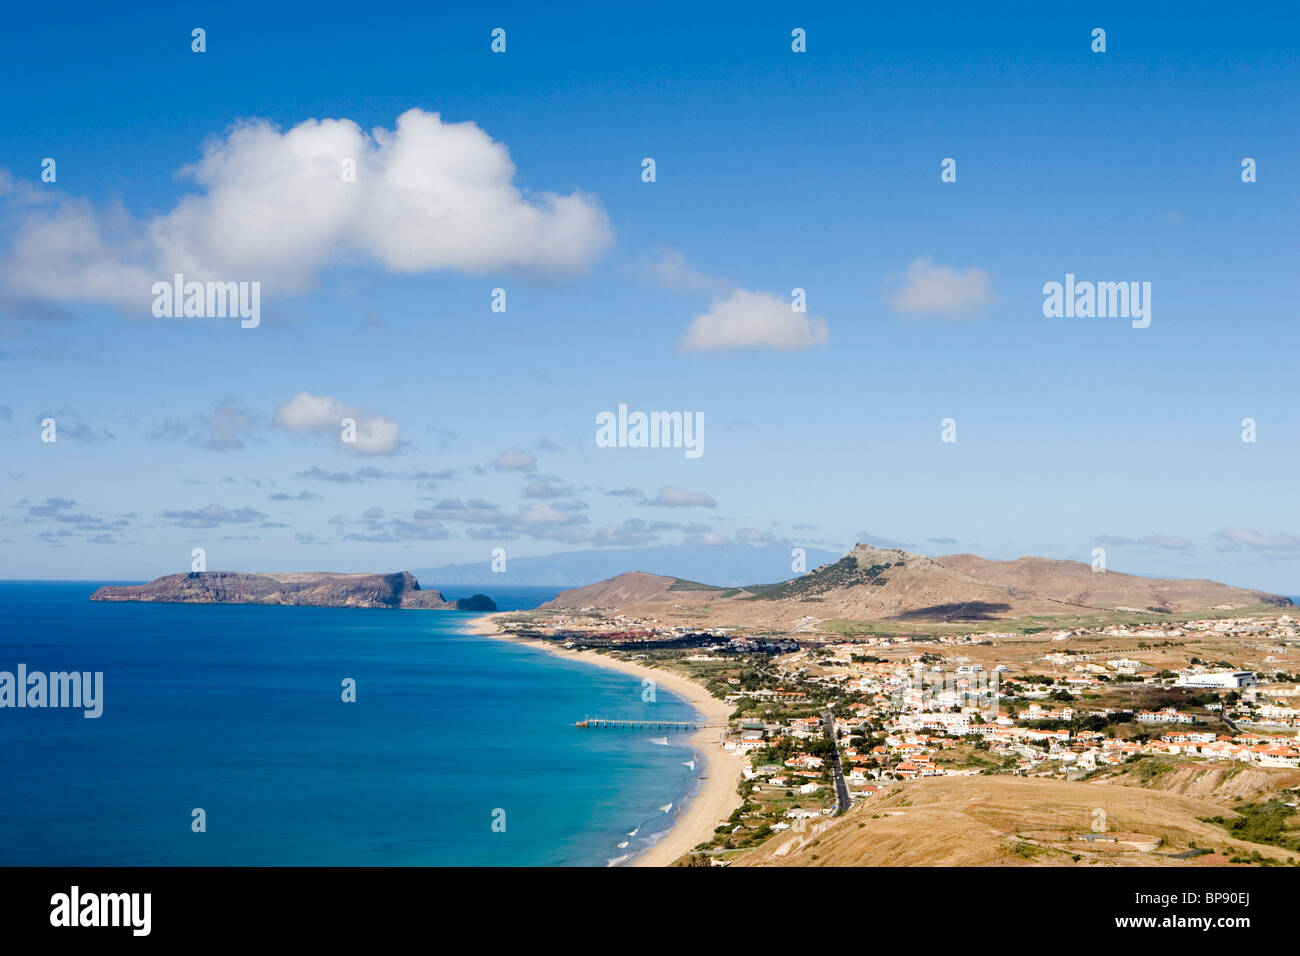 Vila Baleira and Porto Santo Beach seen from Portela, Porto Santo, near Madeira, Portugal - Stock Image